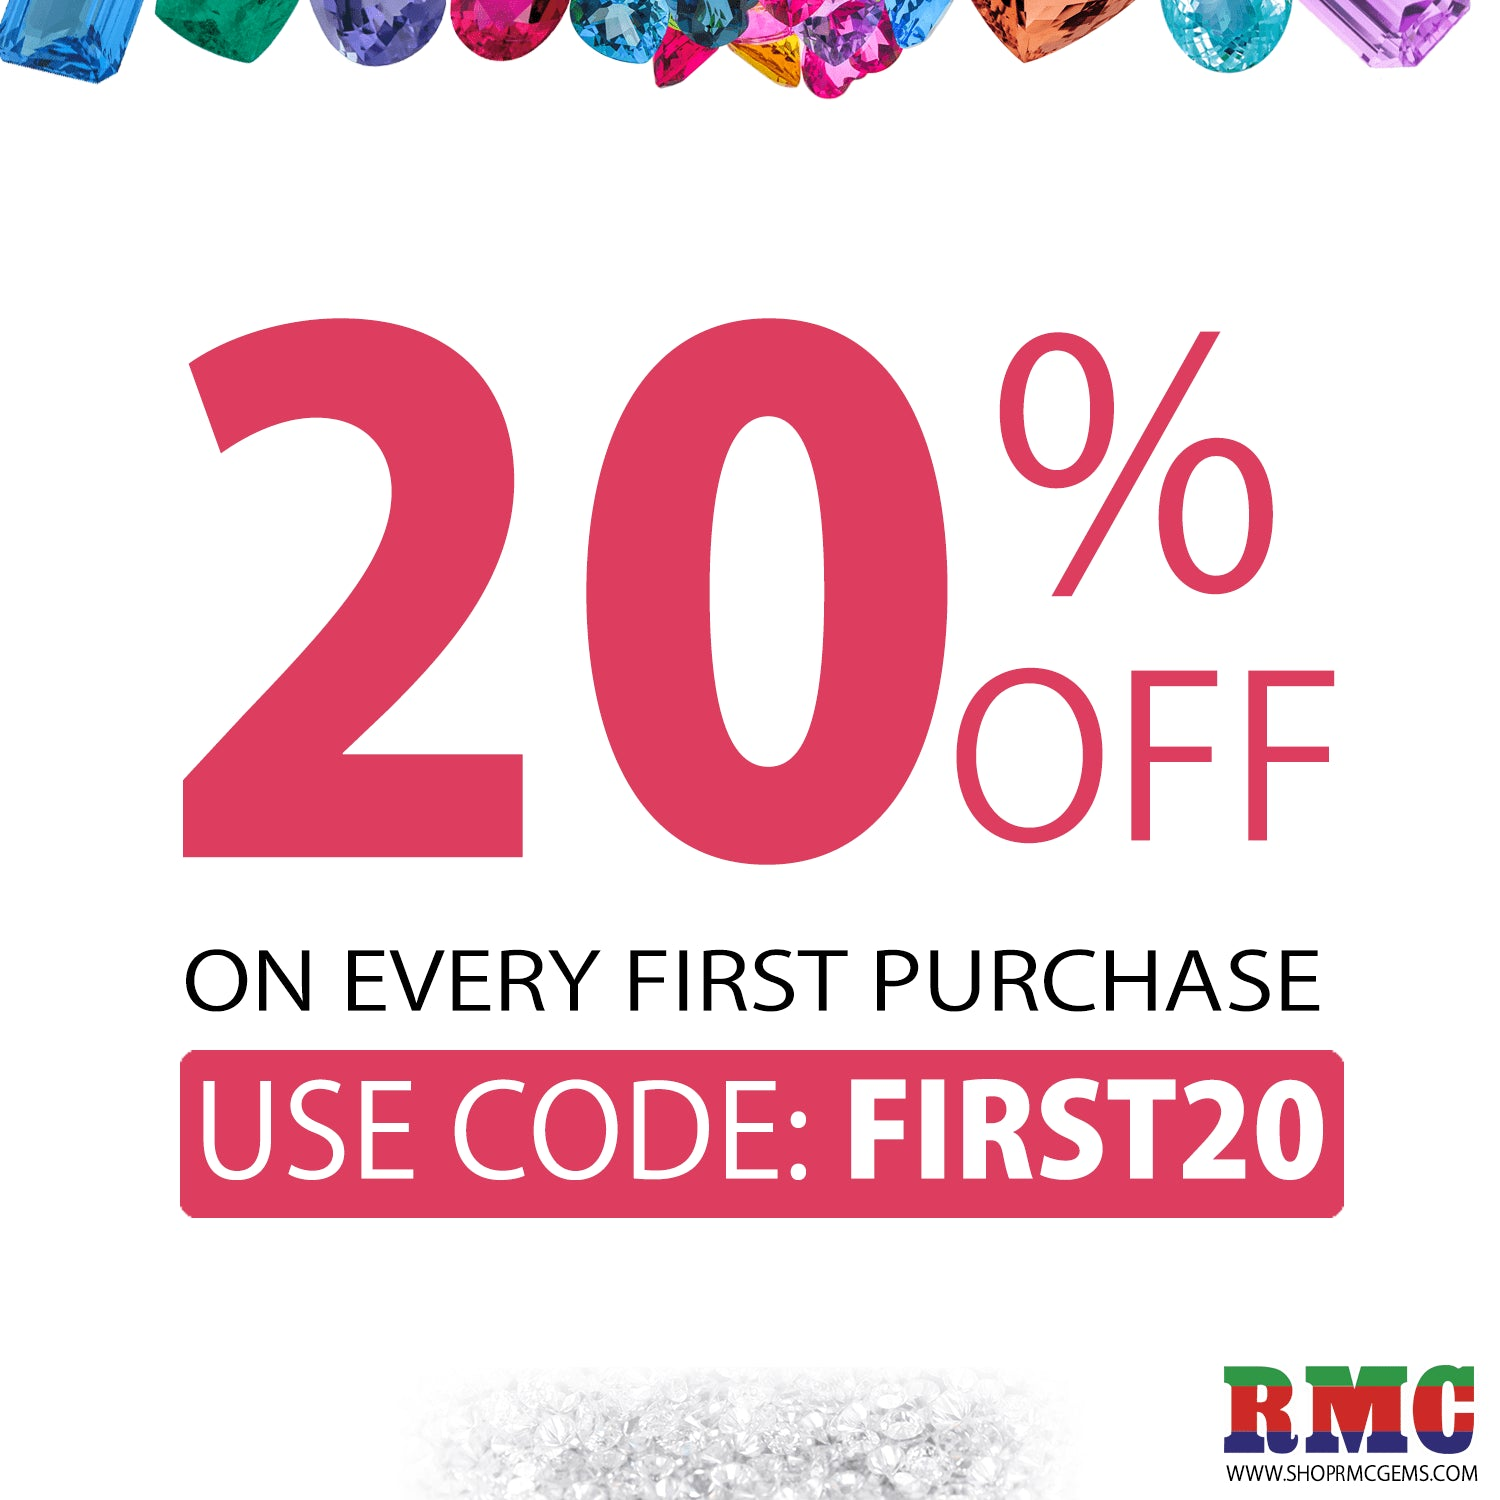 20% OFF On Every First Purchase